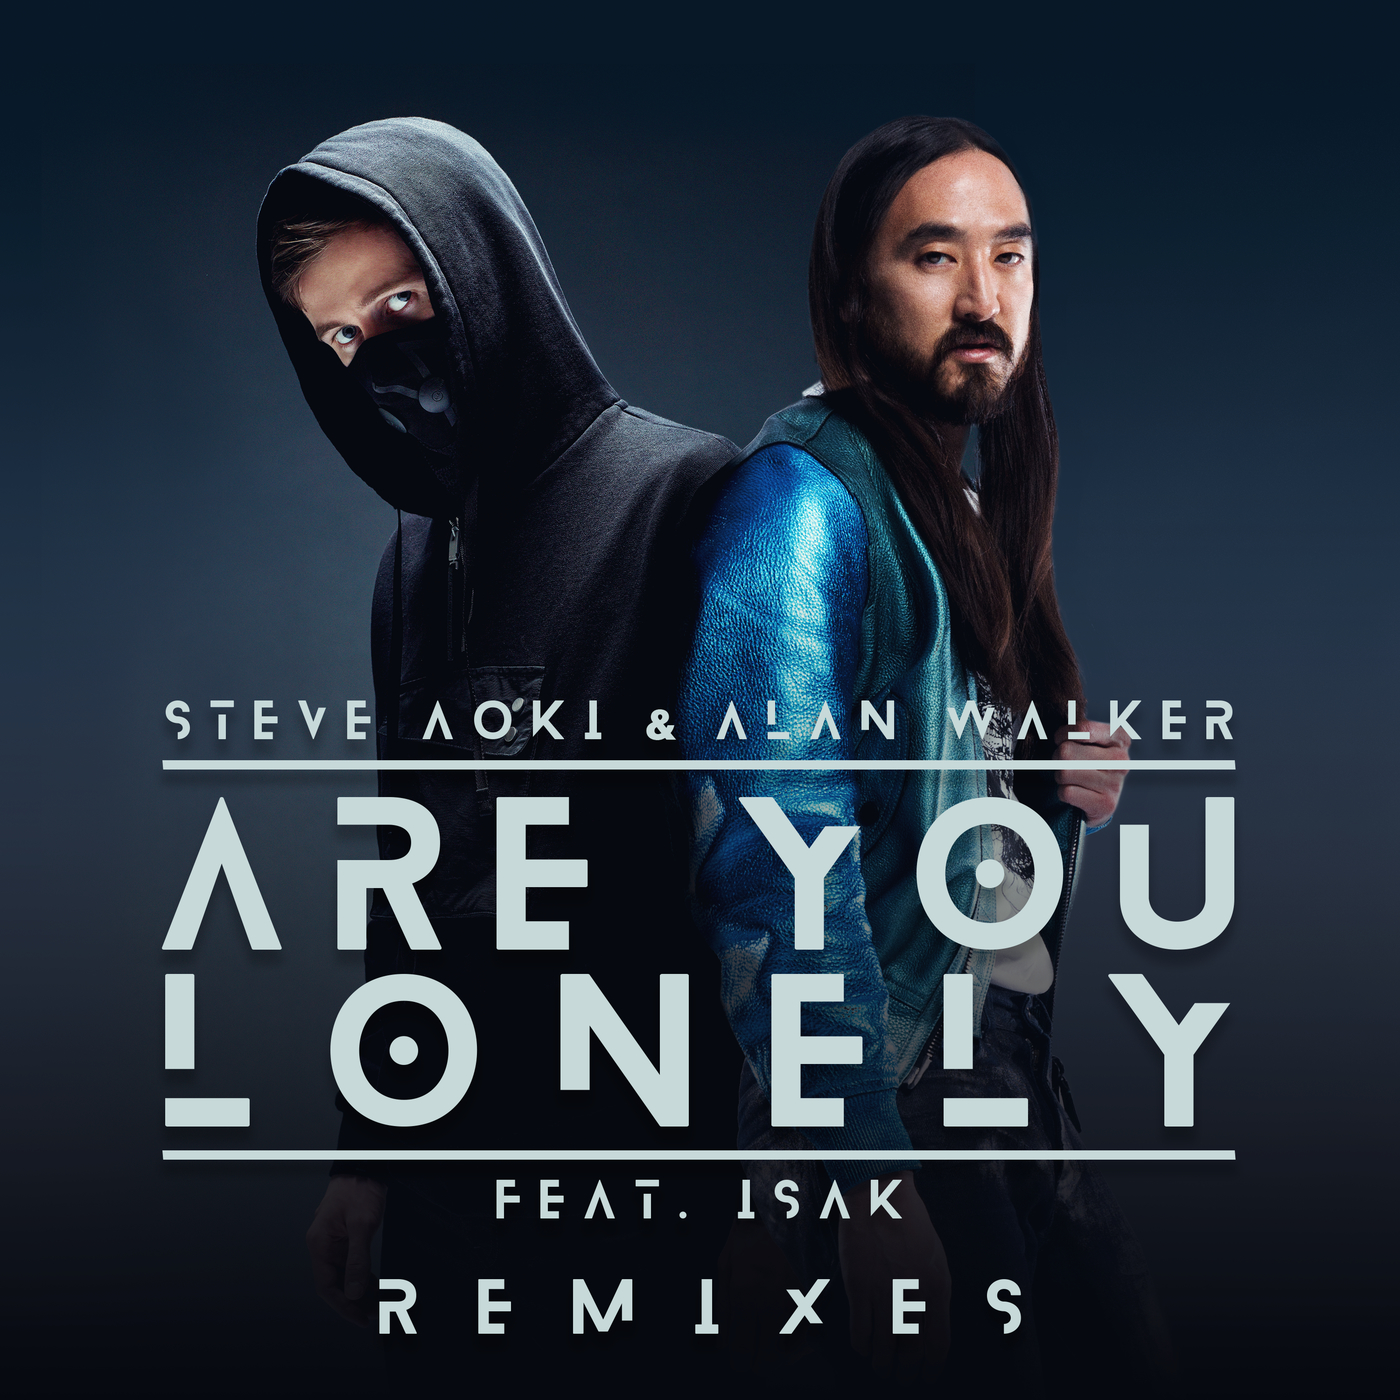 Are You Lonely (Remixes) - Steve Aoki